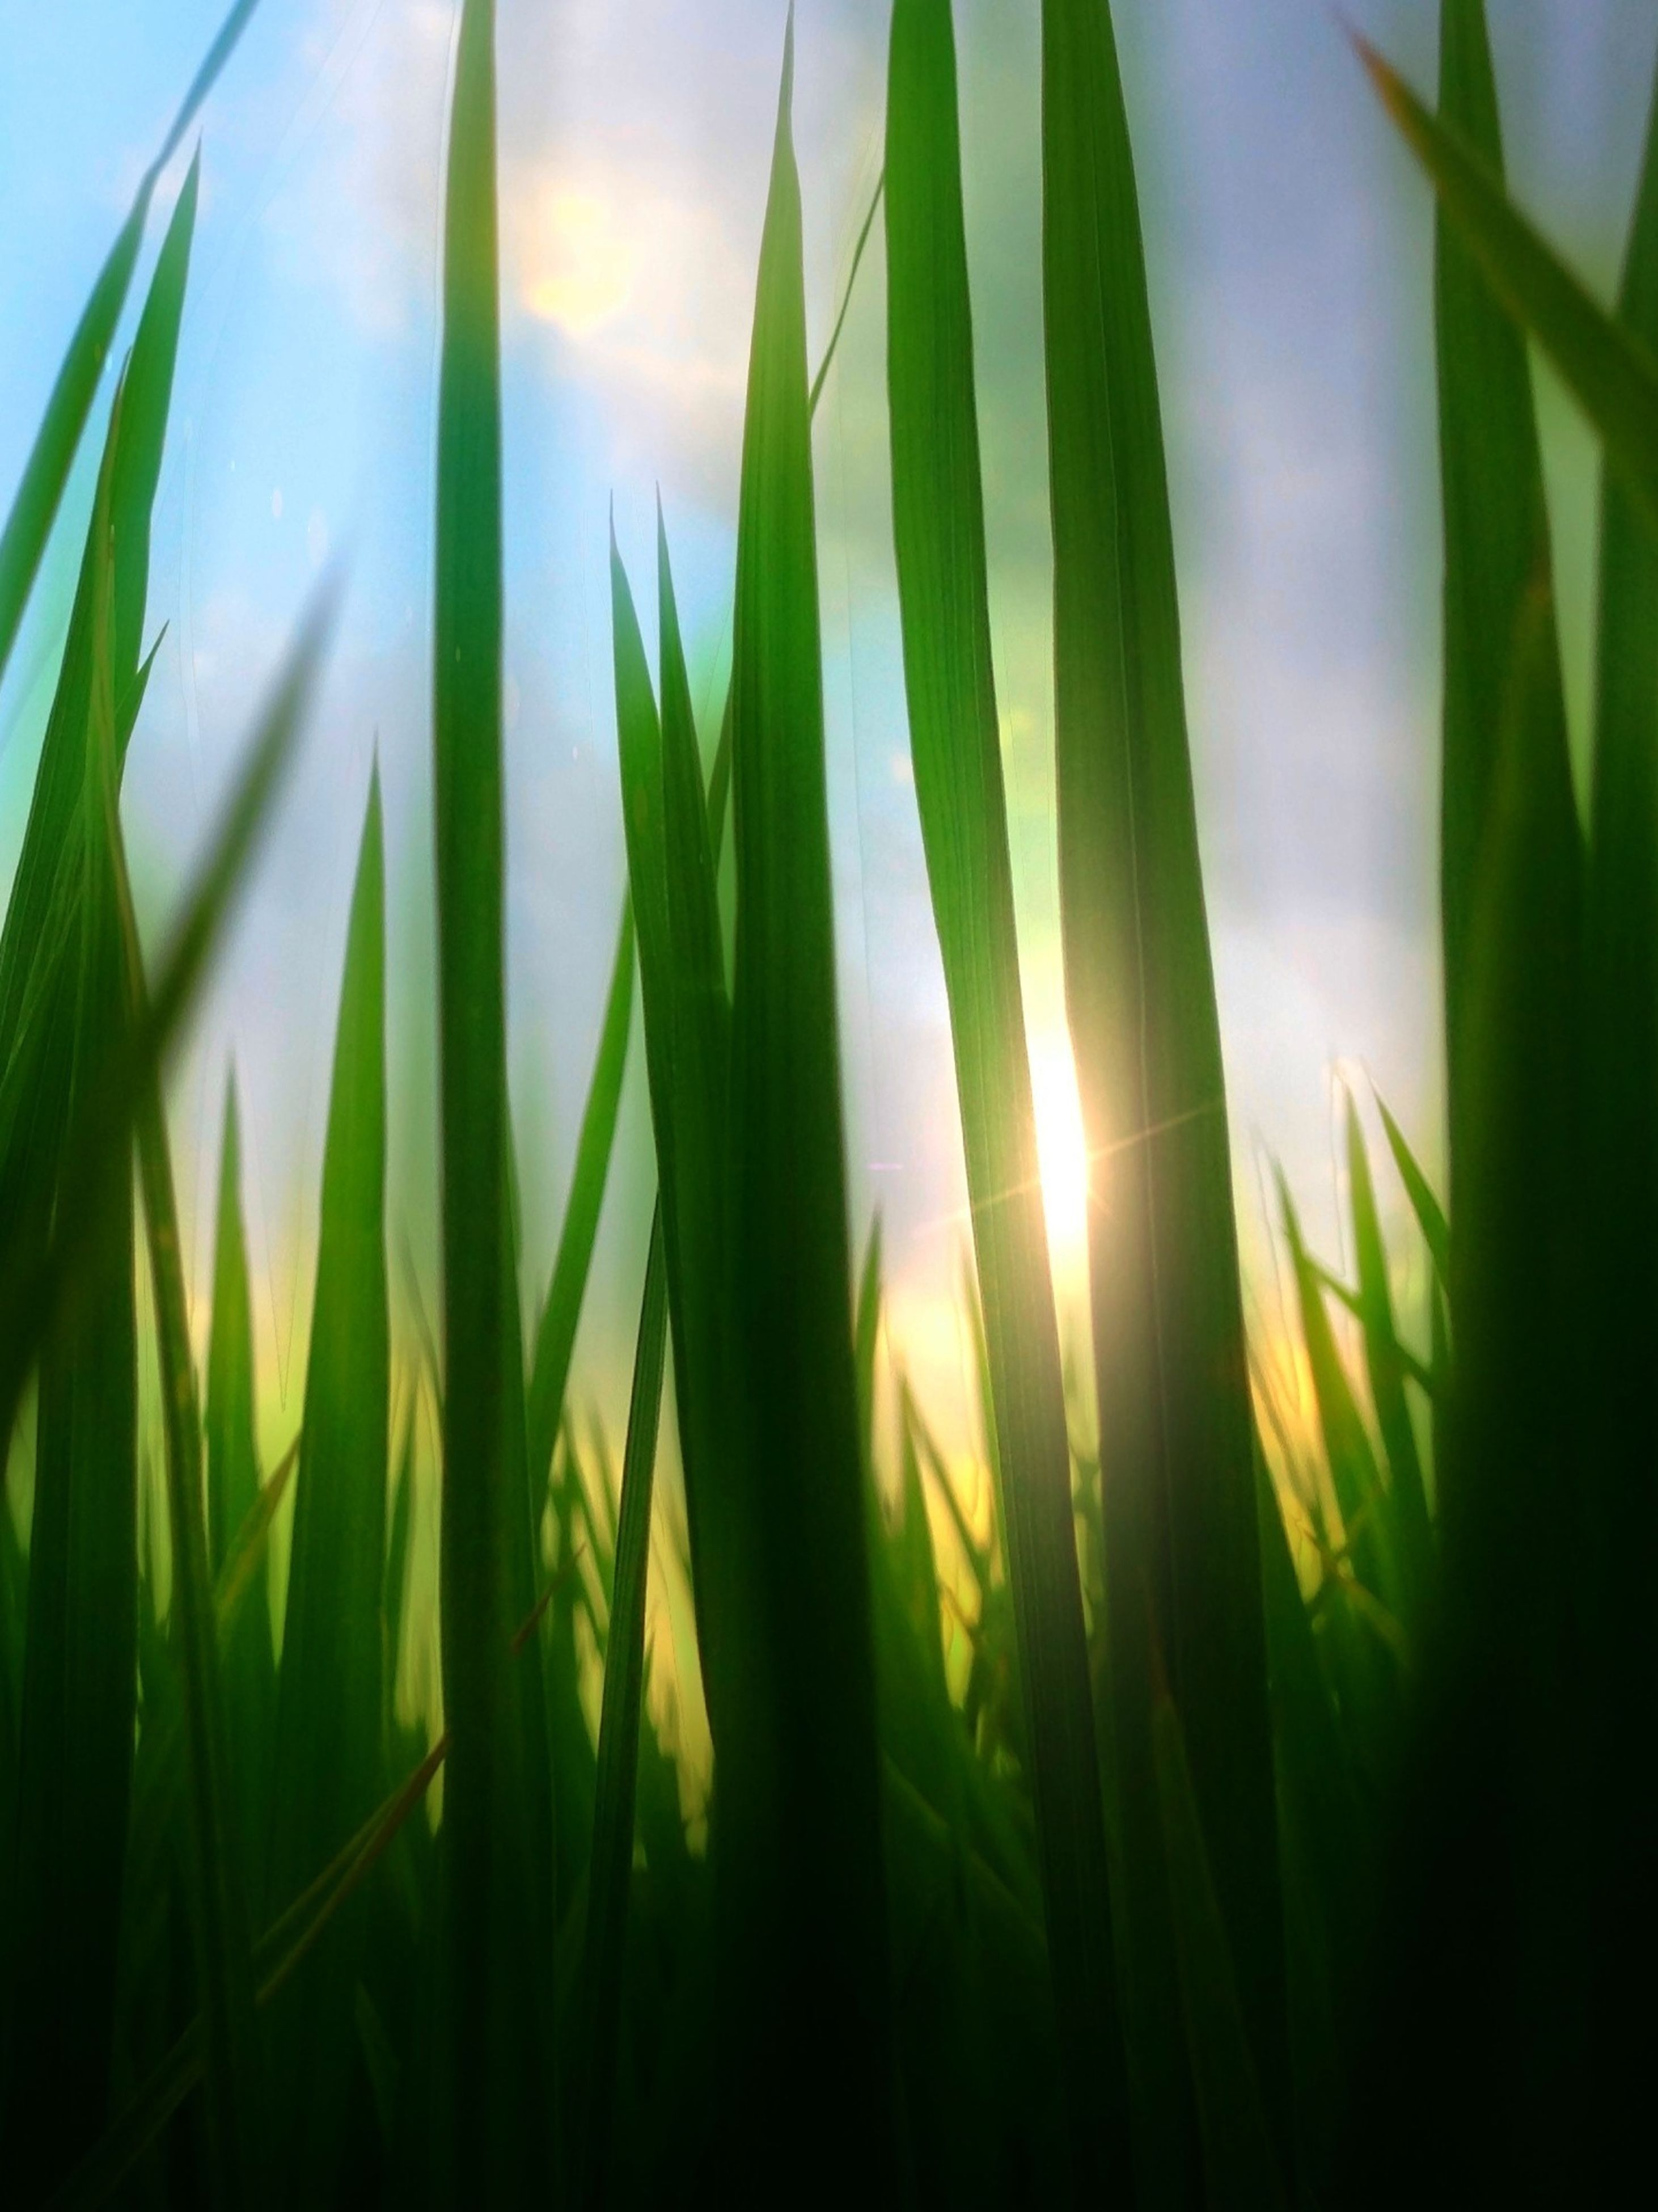 growth, plant, nature, sun, beauty in nature, field, tranquility, grass, green color, sunlight, close-up, sunbeam, focus on foreground, growing, tranquil scene, sunset, freshness, leaf, outdoors, no people